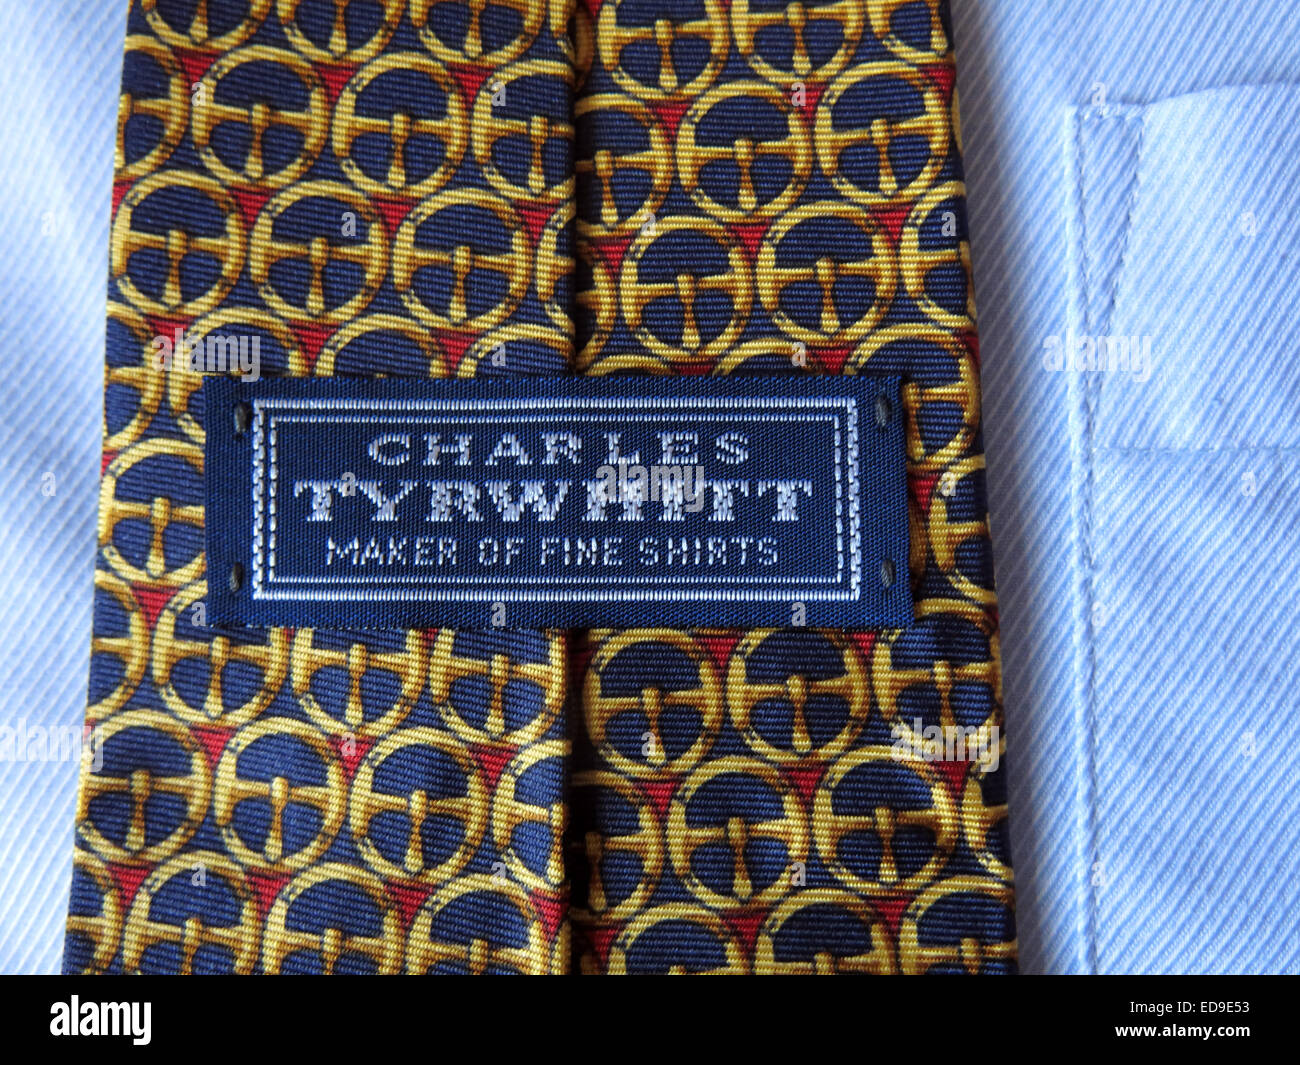 man mans 2nd hand second secondhand back front patterned,retro,selection,on,a,shirt,pattern,patterned,weave,weaving,material,fashion,business,office,apparel,US,English,fashionable,fabric,colour,coloured,colored,label,slim,wide,kipper,designer,uniform,school,casual,cotton,polyester,Charles,Tyrwhitt,gotonysmith,close,up,close-up,macro,mode,moda,textile,maker,of,fine,shirts,accessory,bow,business,businessman,cloth,clothes,clothing,collar,corporate,cravat,cute,design,designer,dress,elegance,elegant,fabric,fashion,fashionable,formal,garments,knot modern ascot tie,bow tie,bolo tie,zipper tie,cravat and clip-on tie